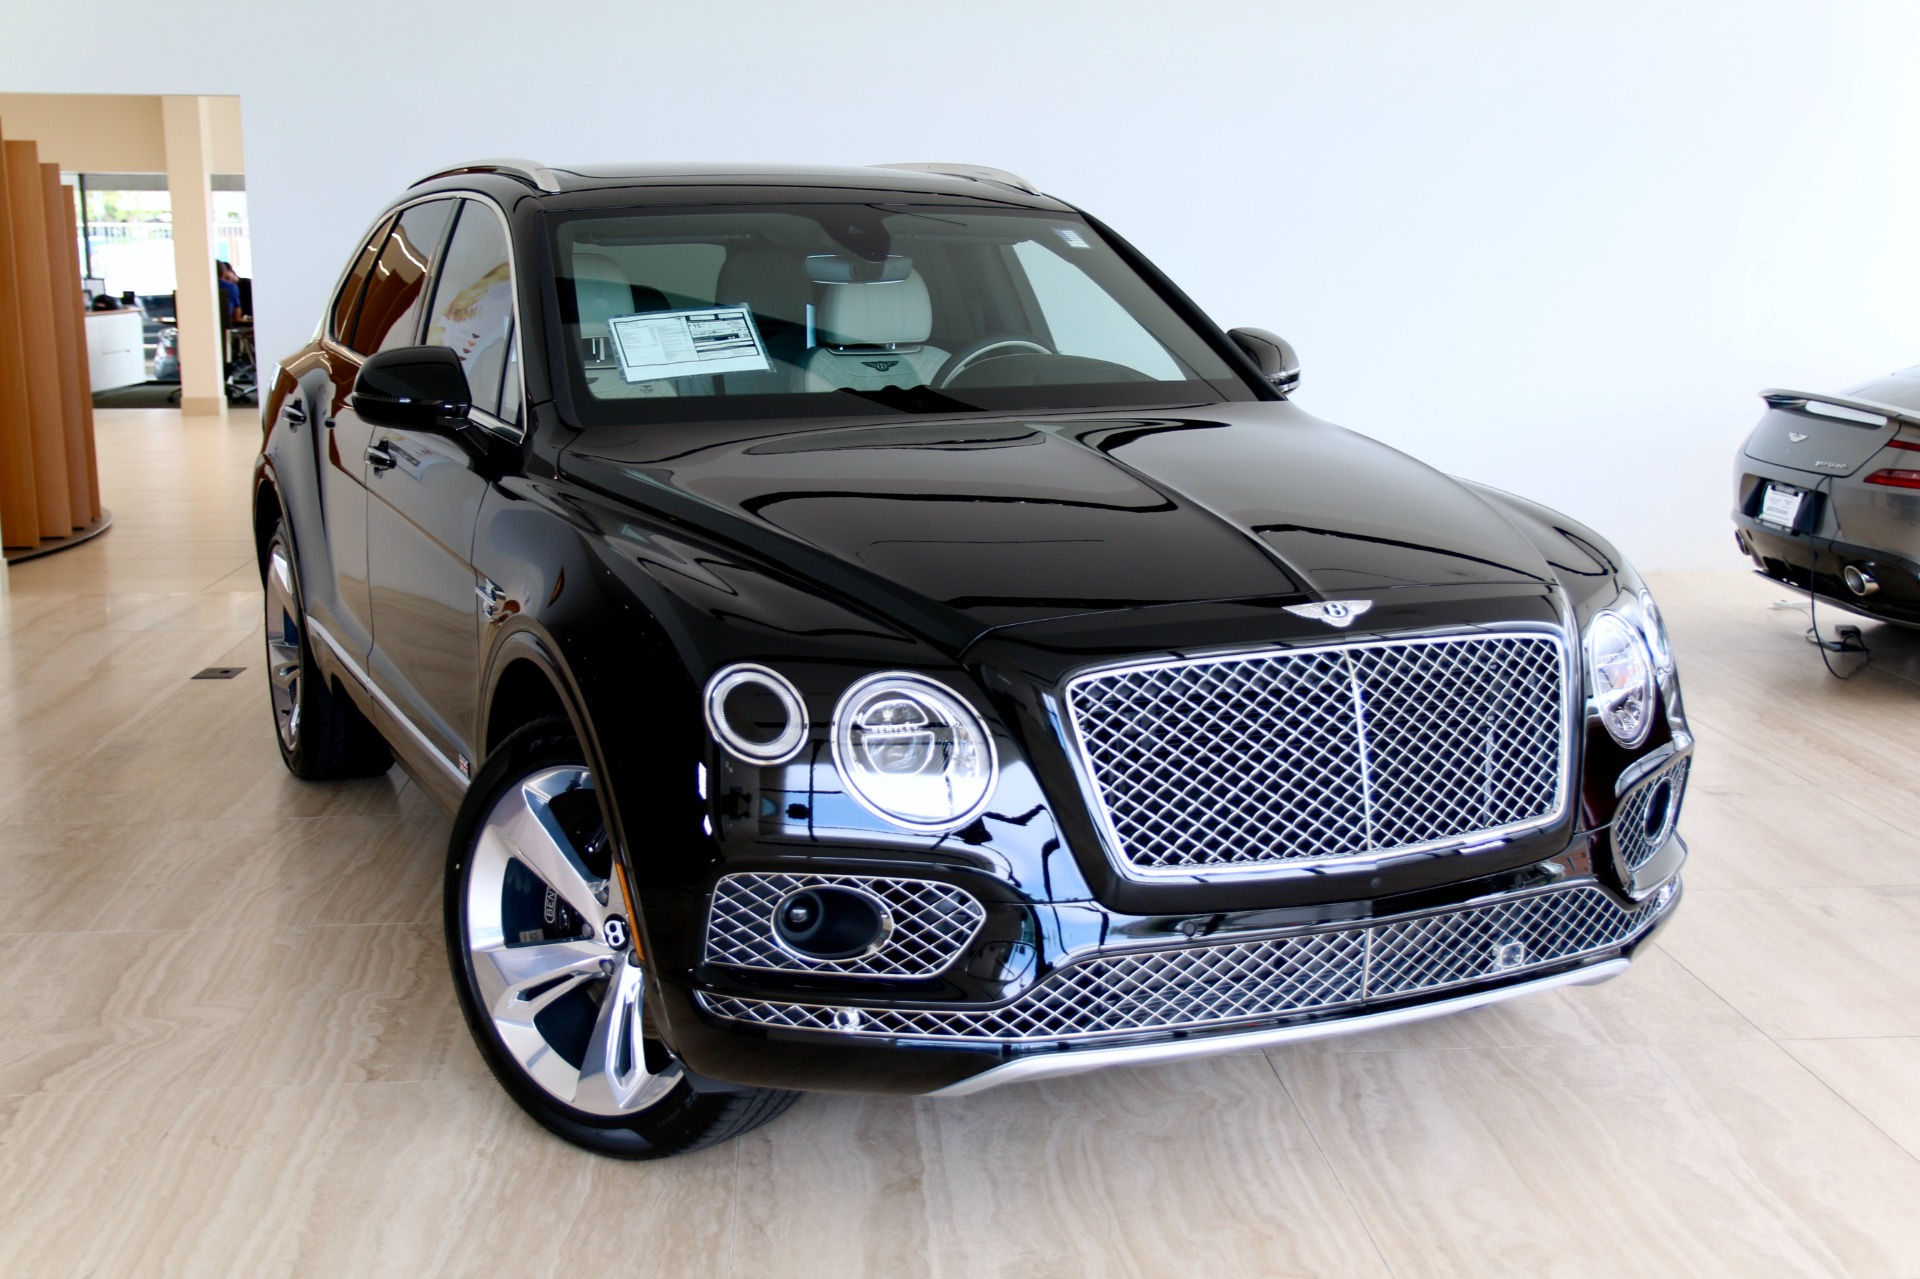 Bentley Bentayga For Sale >> 2018 Bentley Bentayga W12 Signature Stock 8n017200 For